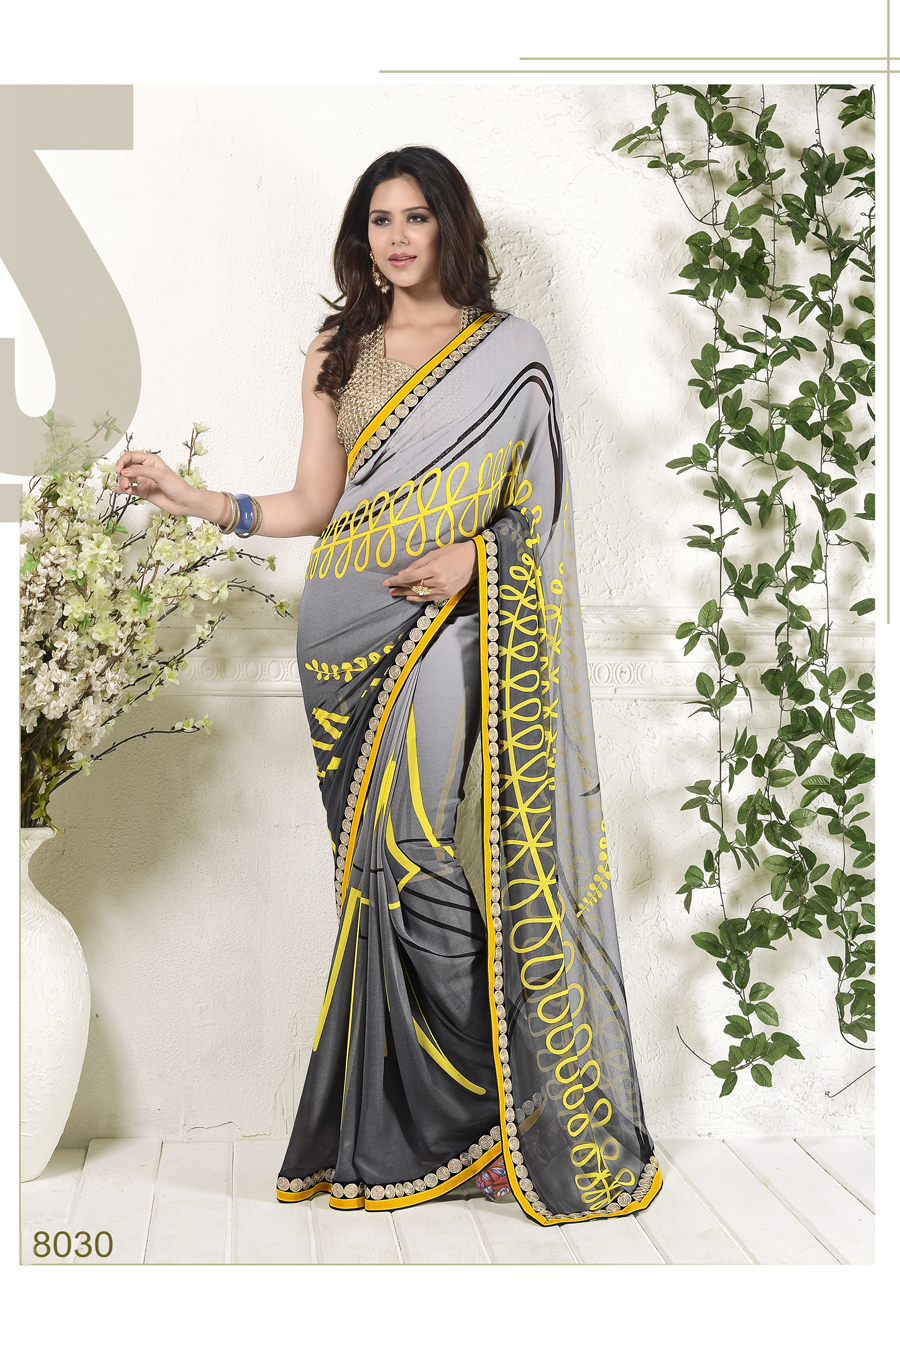 Meera 4-Latest Fashion Stylish Georgette Fancy designer Saree